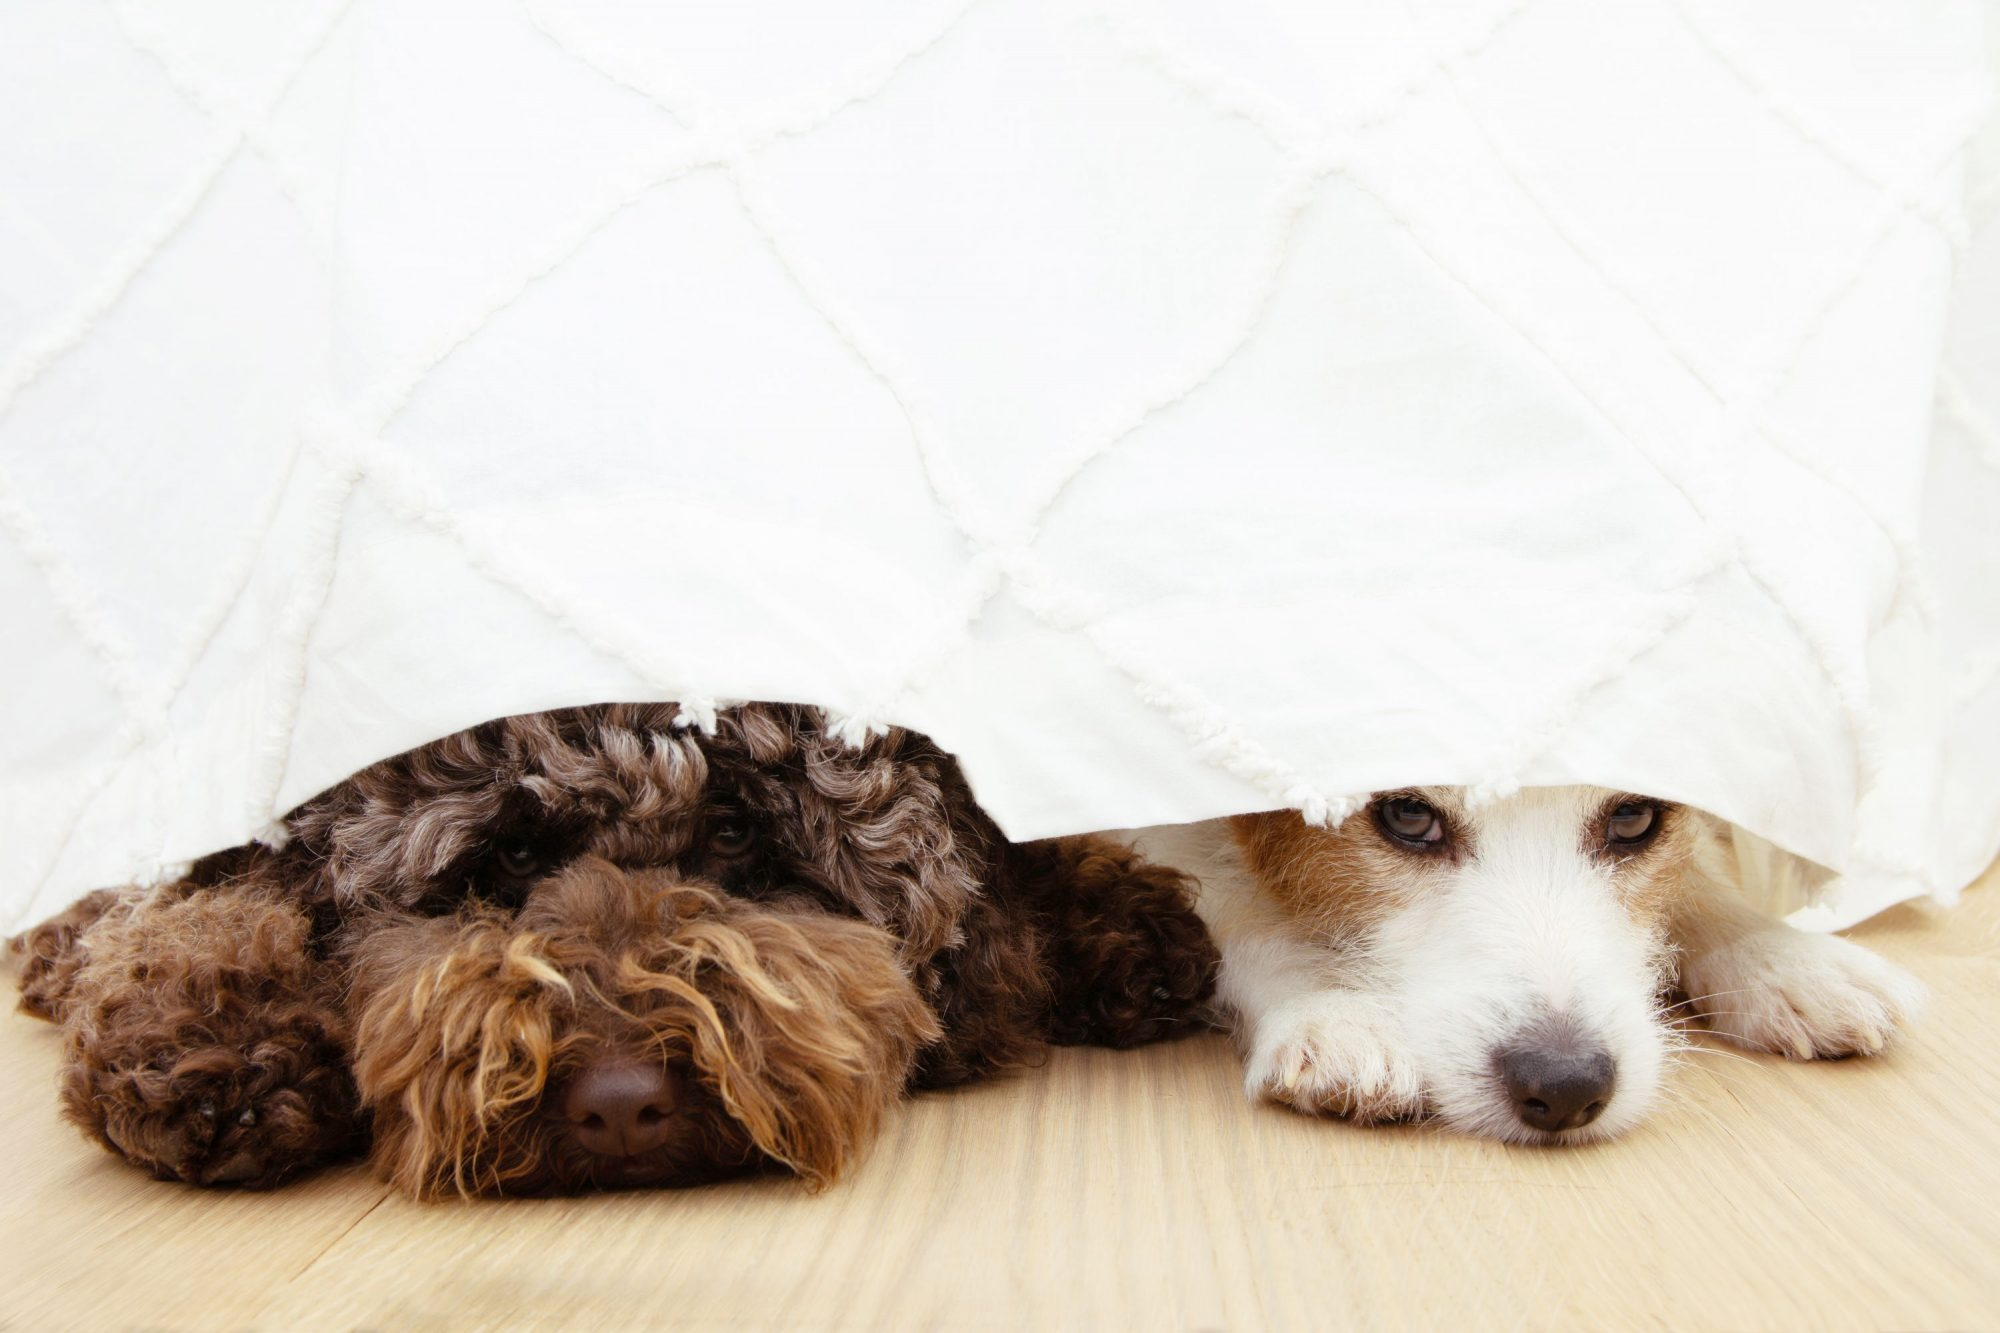 Two dogs hide under a blanket from the sound of fireworks.